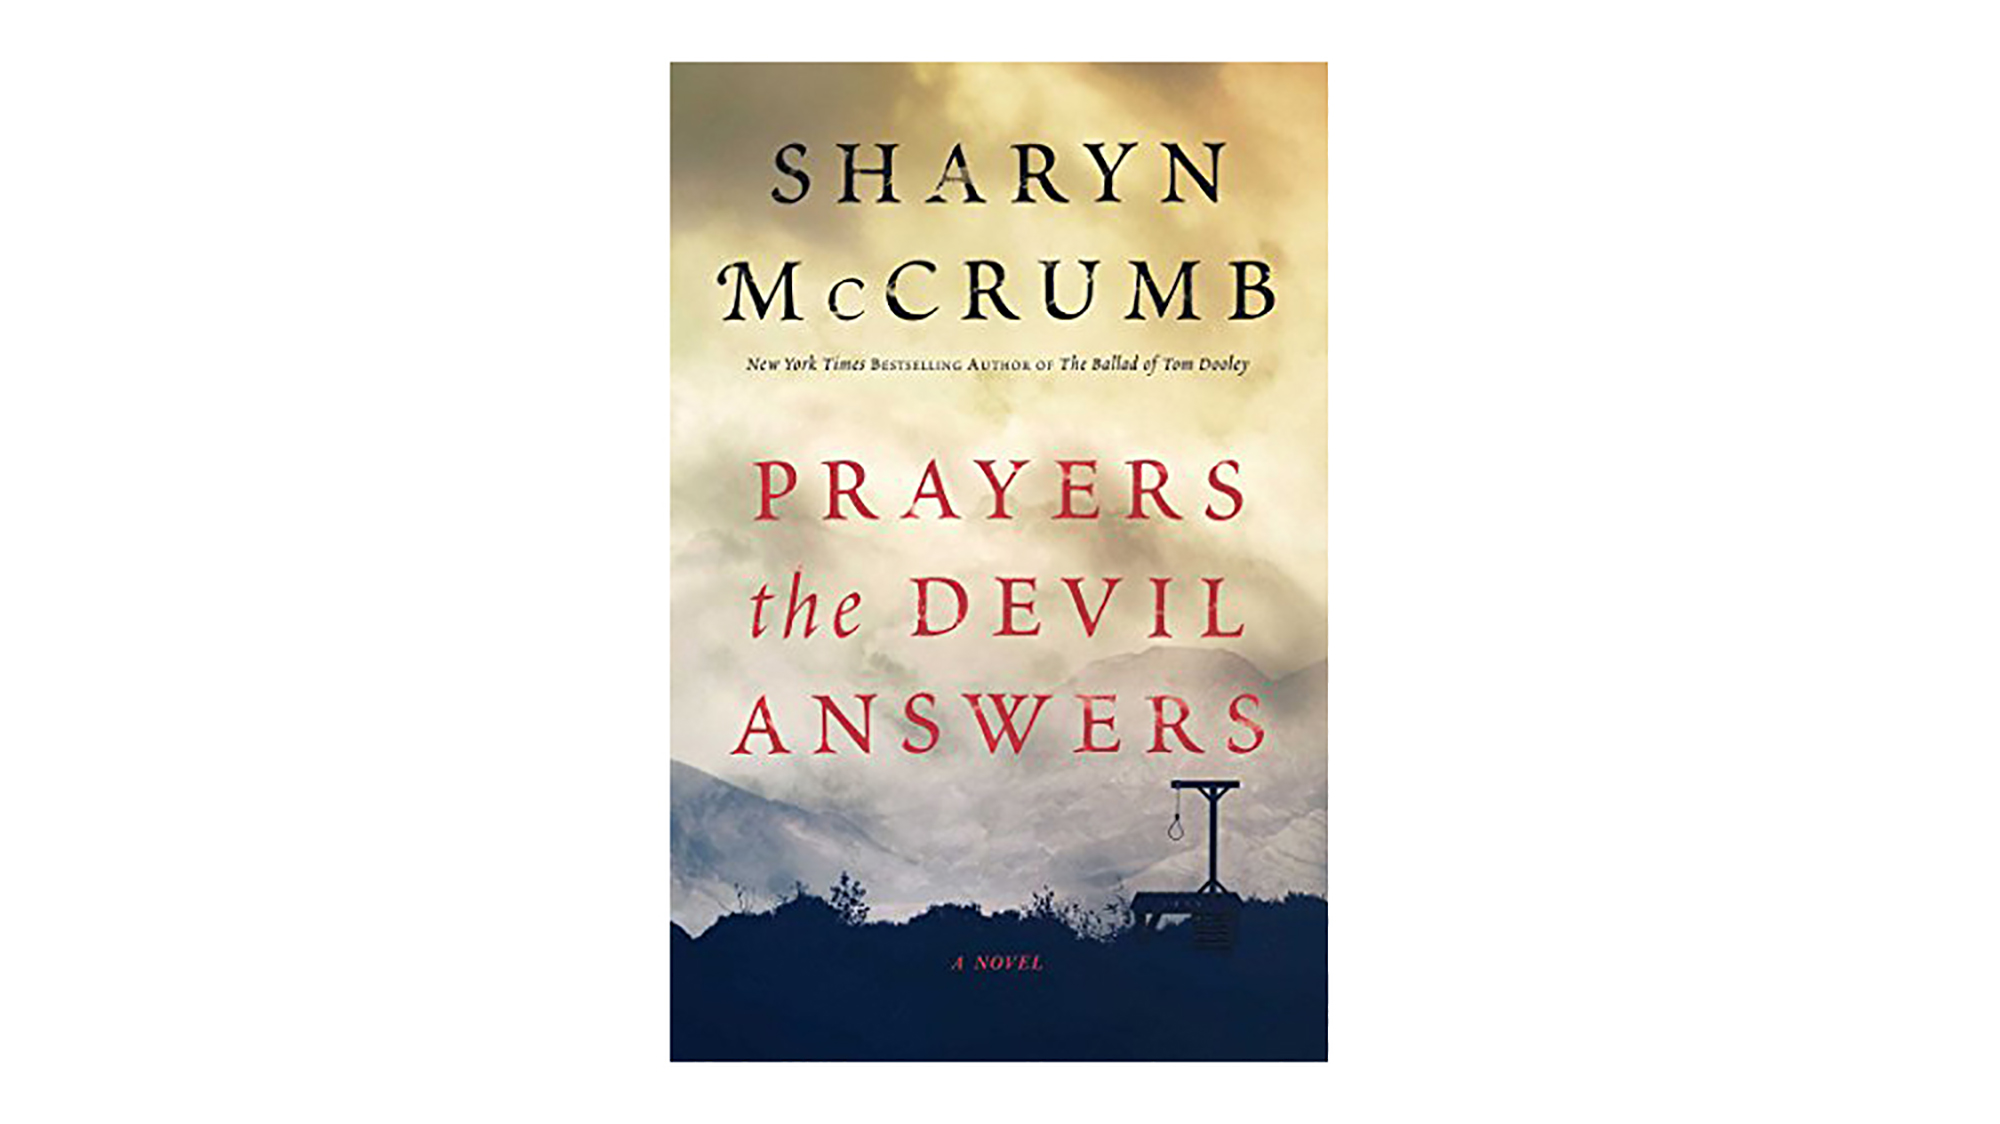 Prayers the Devil Answers by Sharyn Mcrumb